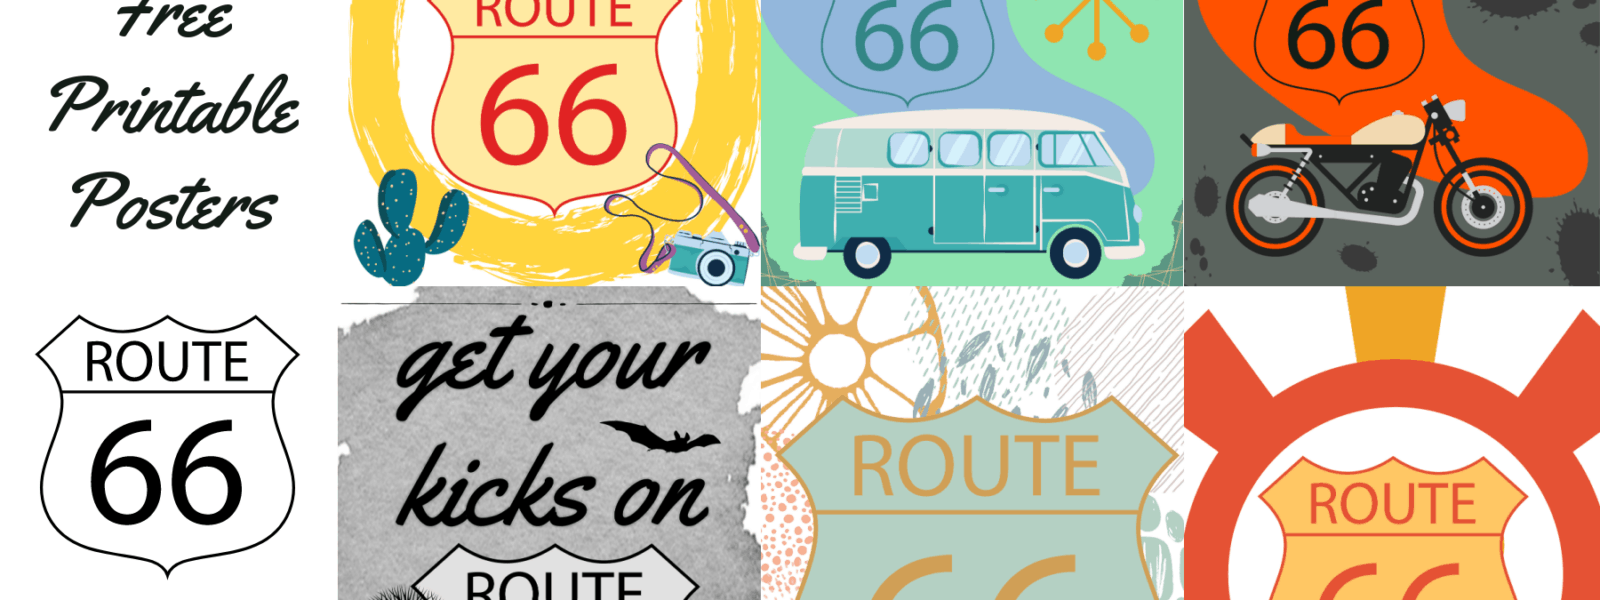 FREE Printable Route 66 Travel Wall Art Gallery Prints!